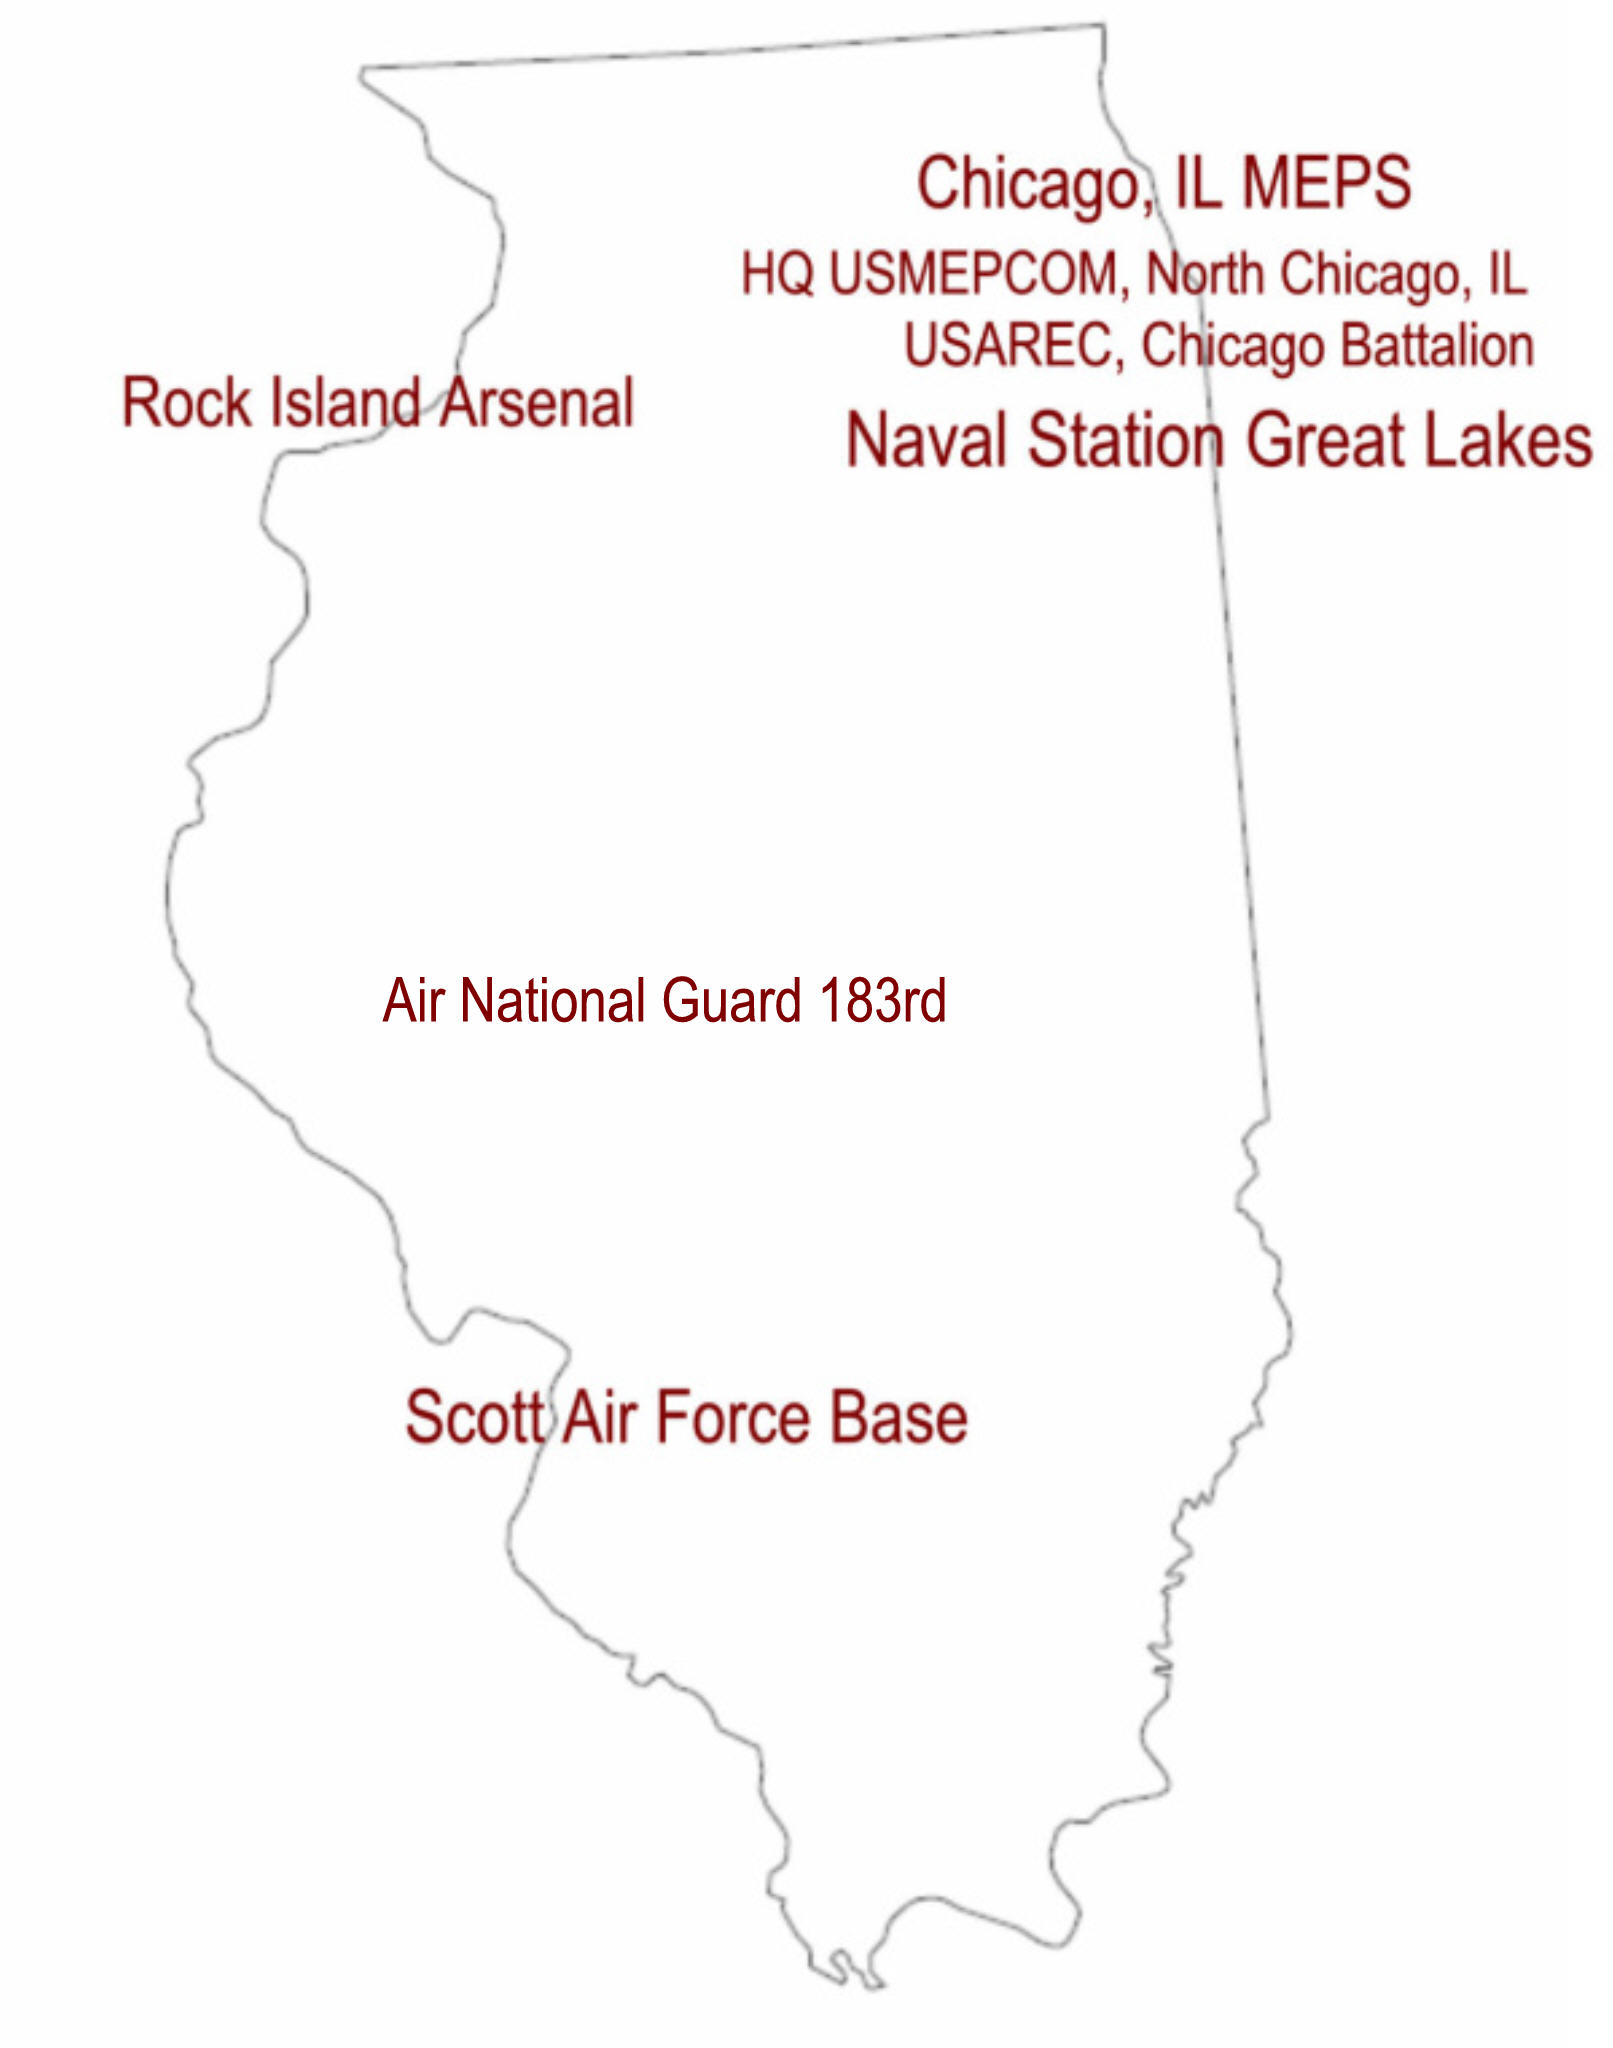 Map showing the location of Military Installations in Illinois